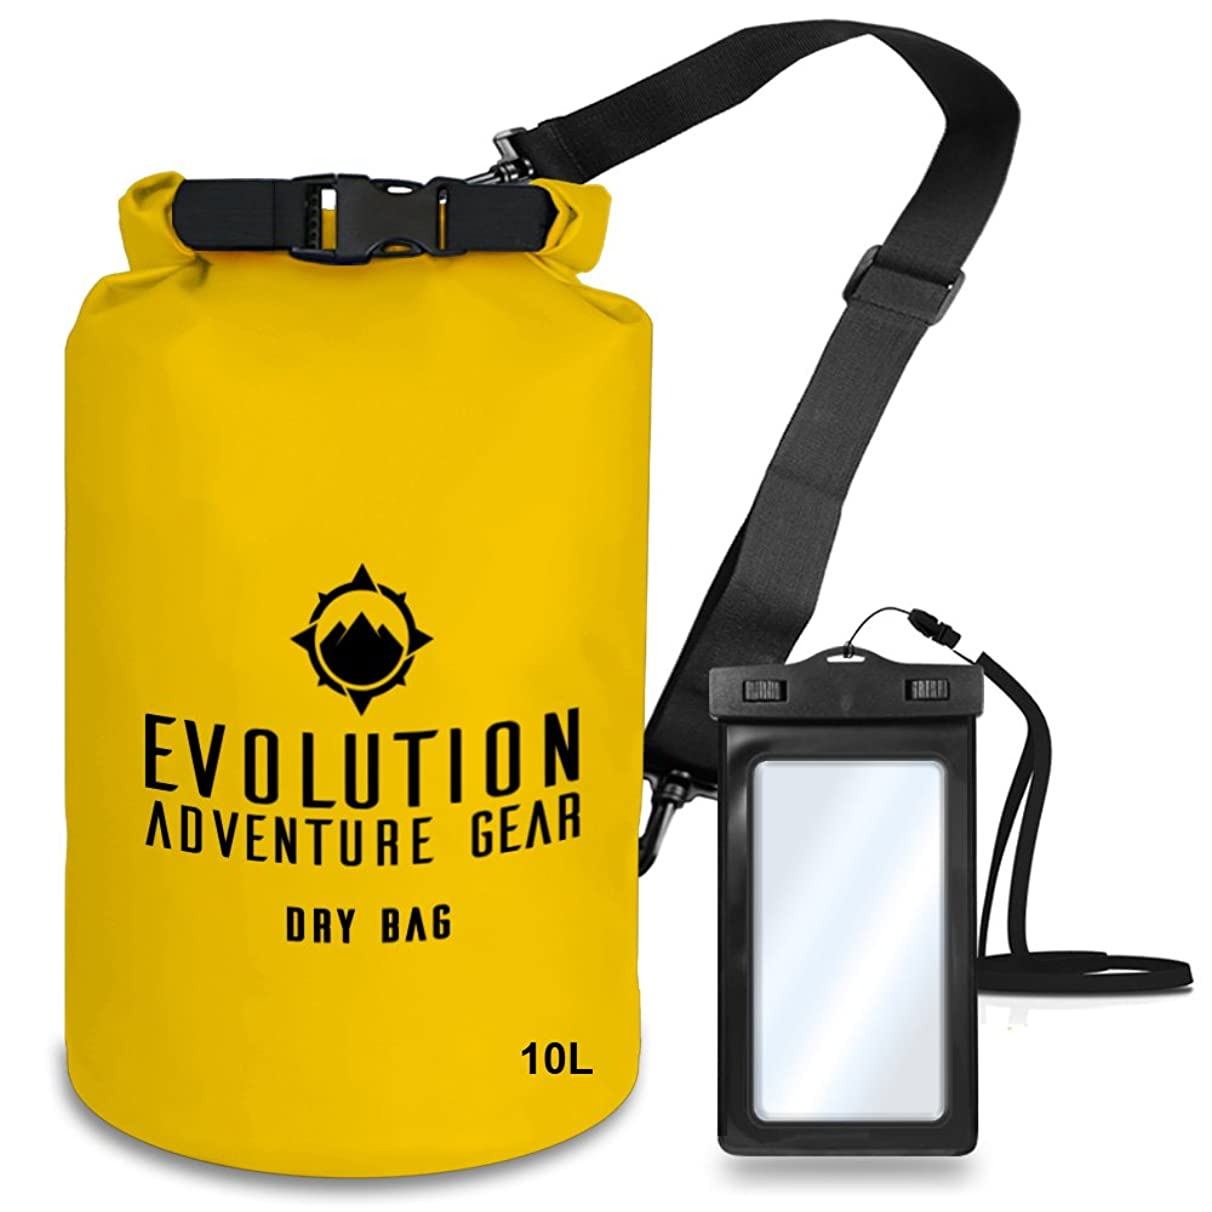 Evolution Floating Waterproof Dry Bag – Professional Adventure Gear - Roll Top Compression Sack for Kayaking, Boating, Hiking, Fishing, Camping and Outdoor Travel